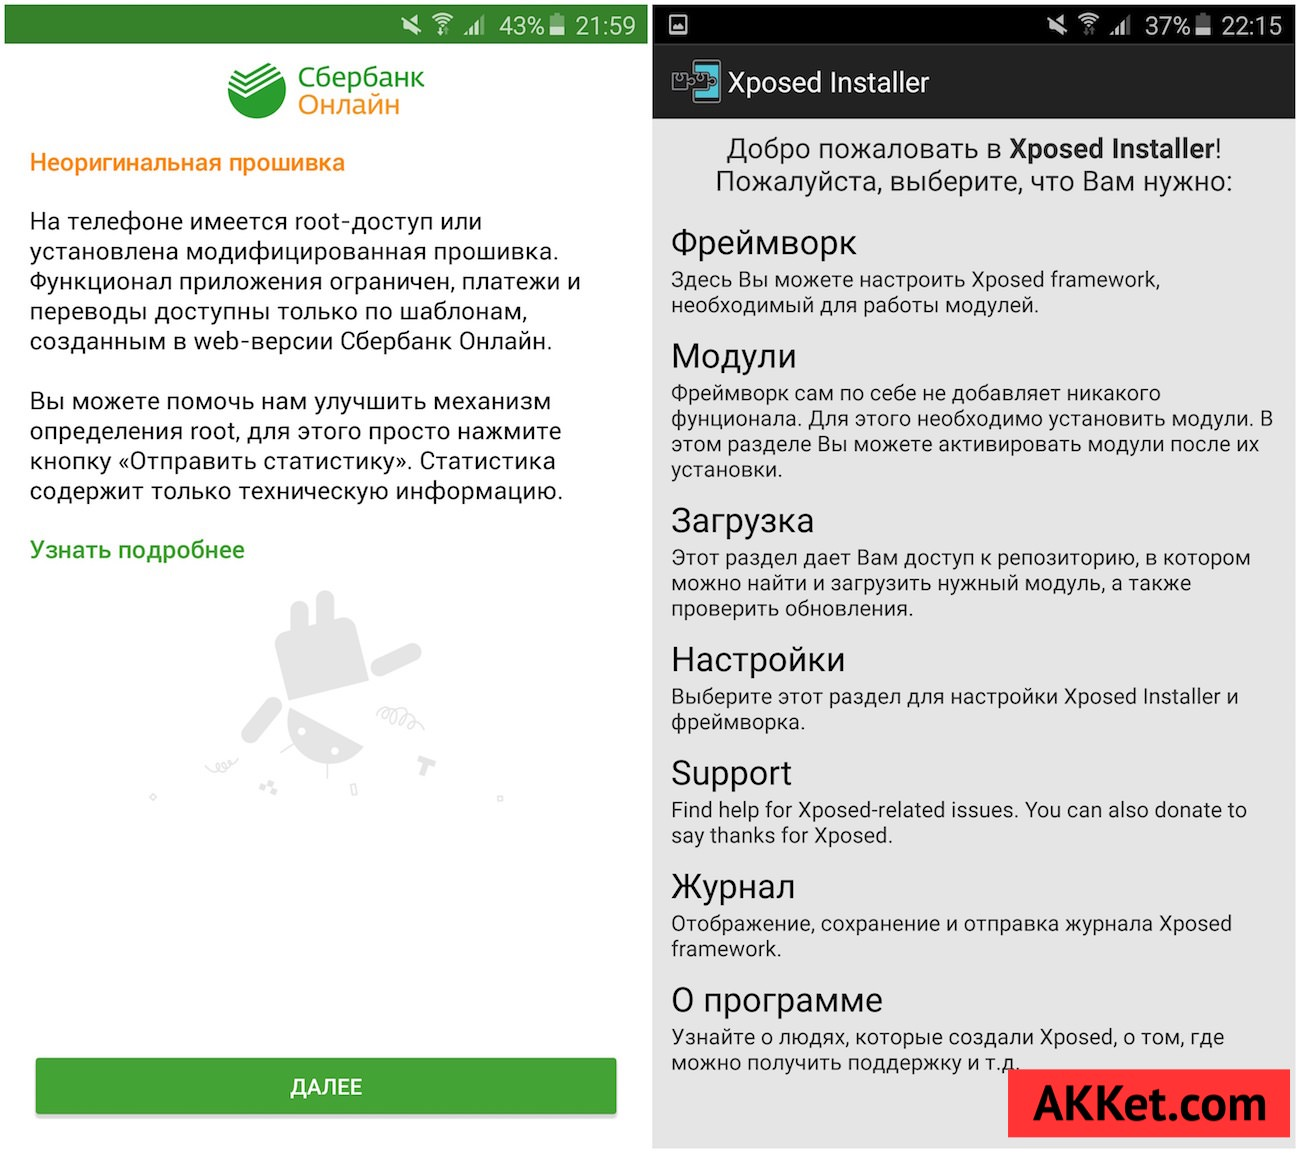 Sberbank Online Android root 3